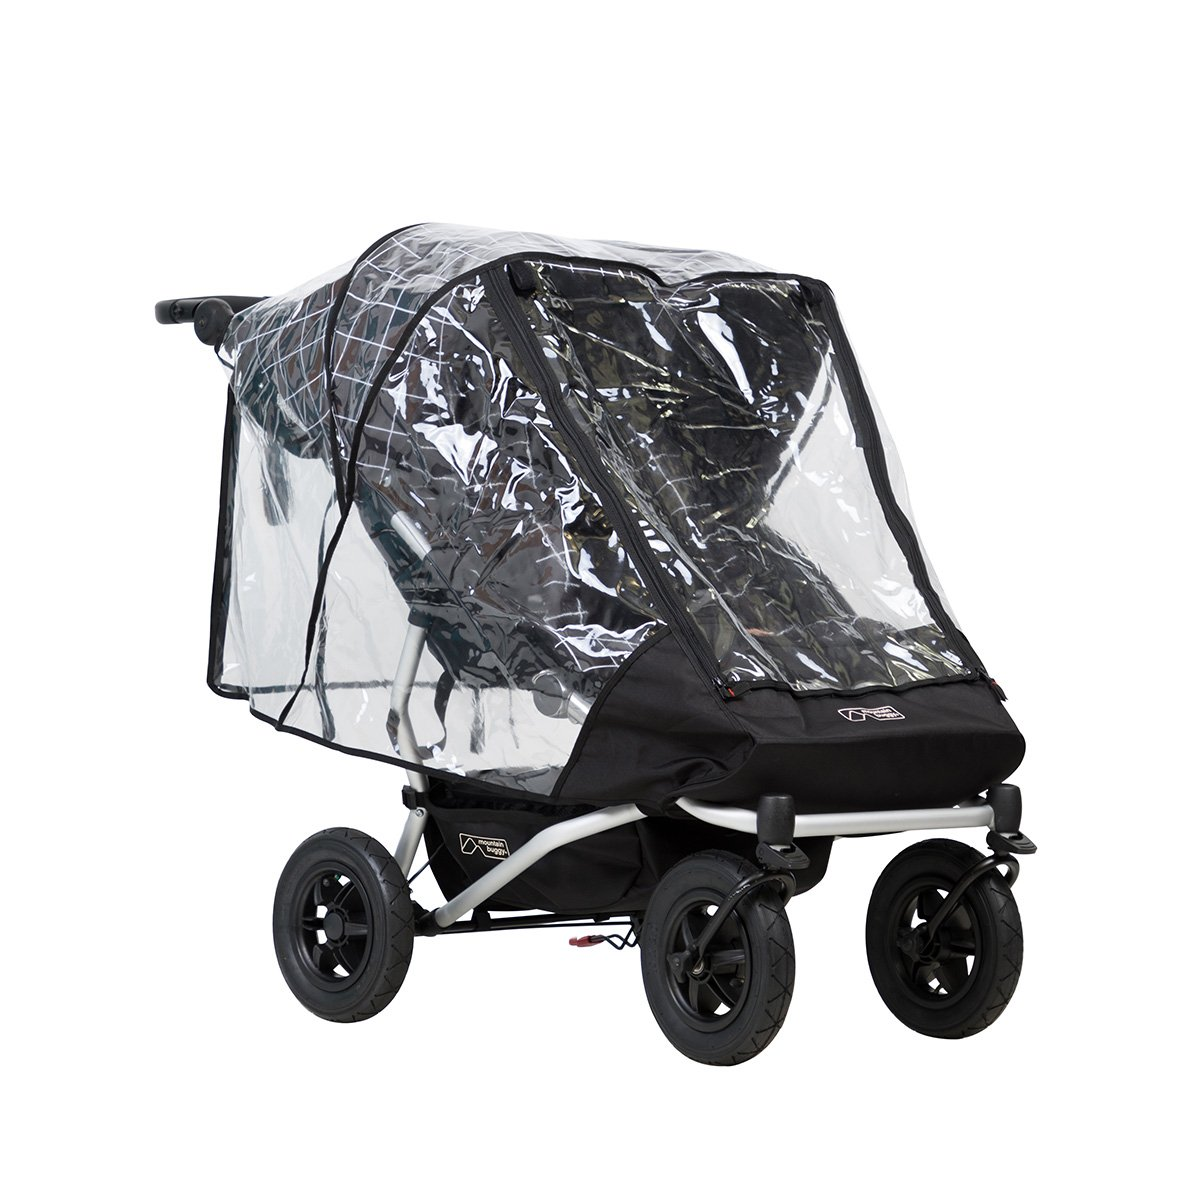 Mountain Buggy Duet Double Cover, Storm, Clear